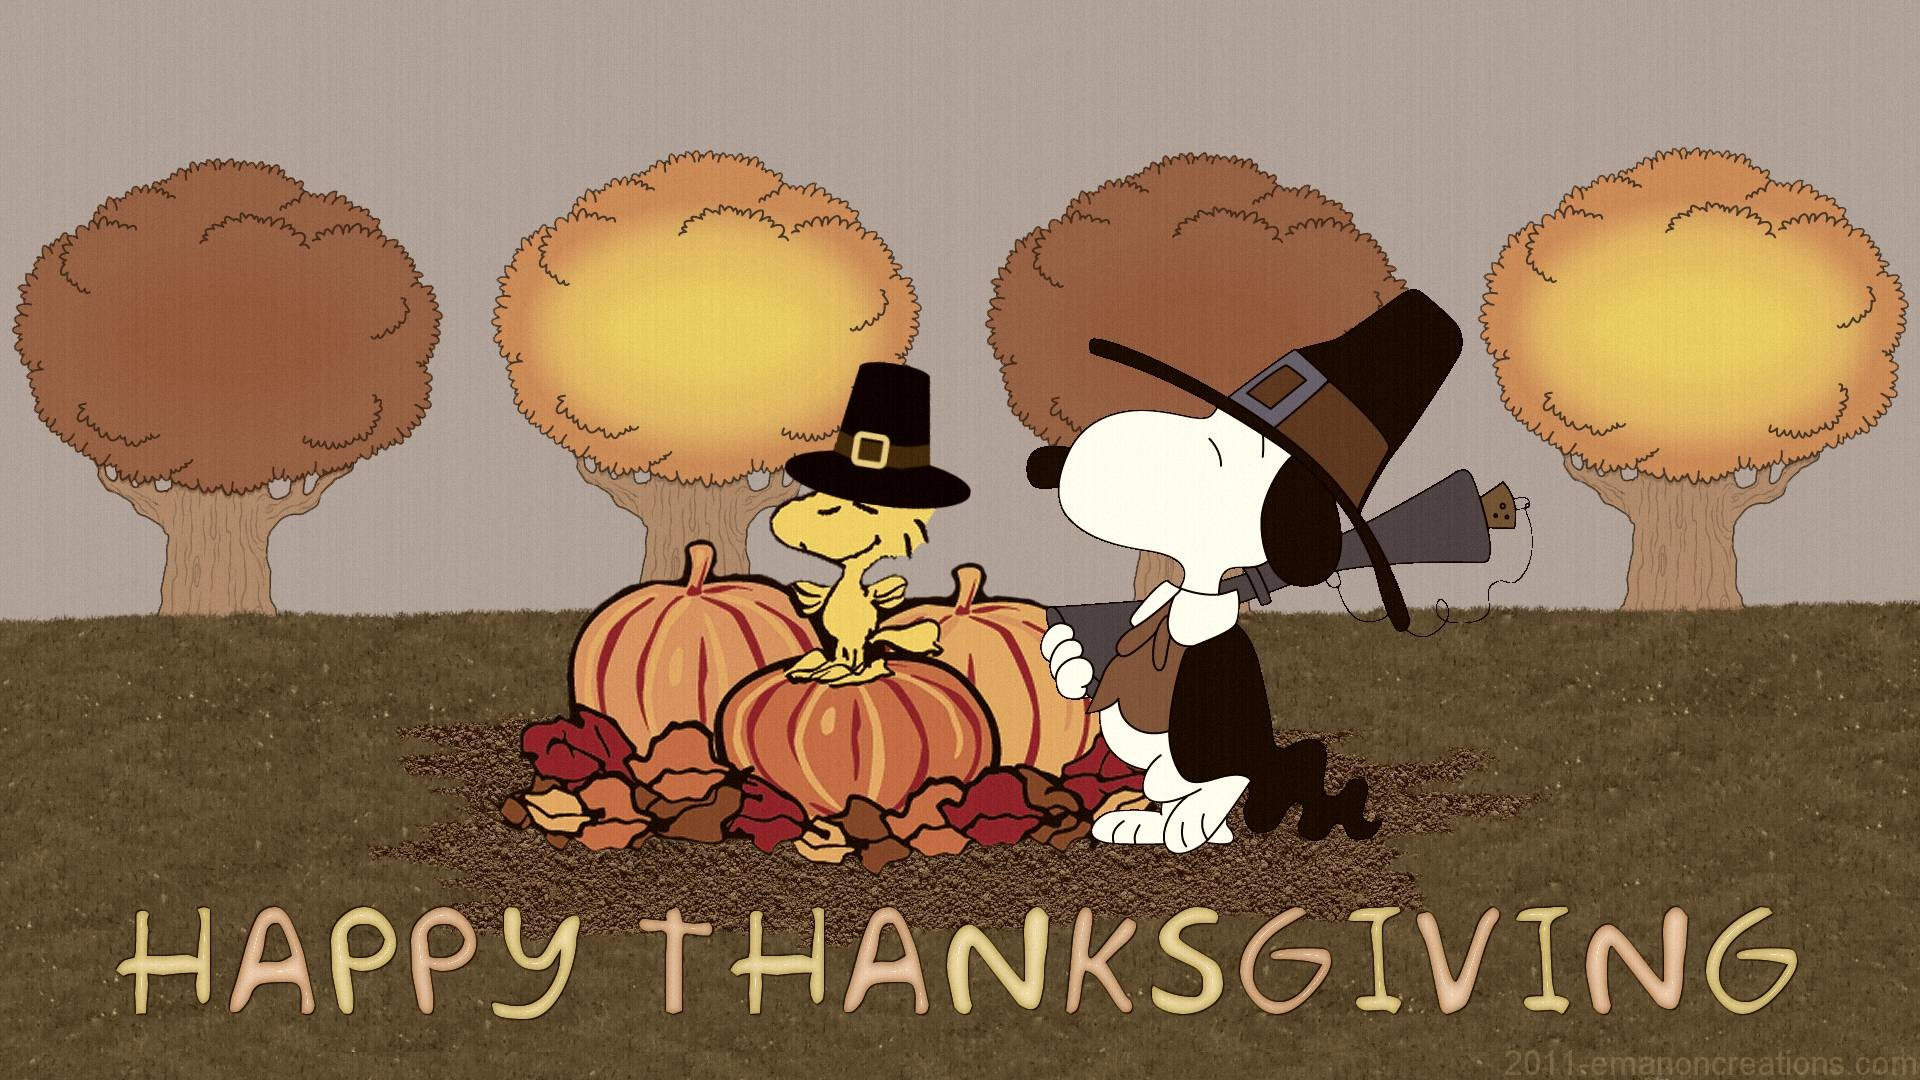 Res: 1920x1080, Snoopy Thanksgiving Wallpapers - Wallpaper Cave